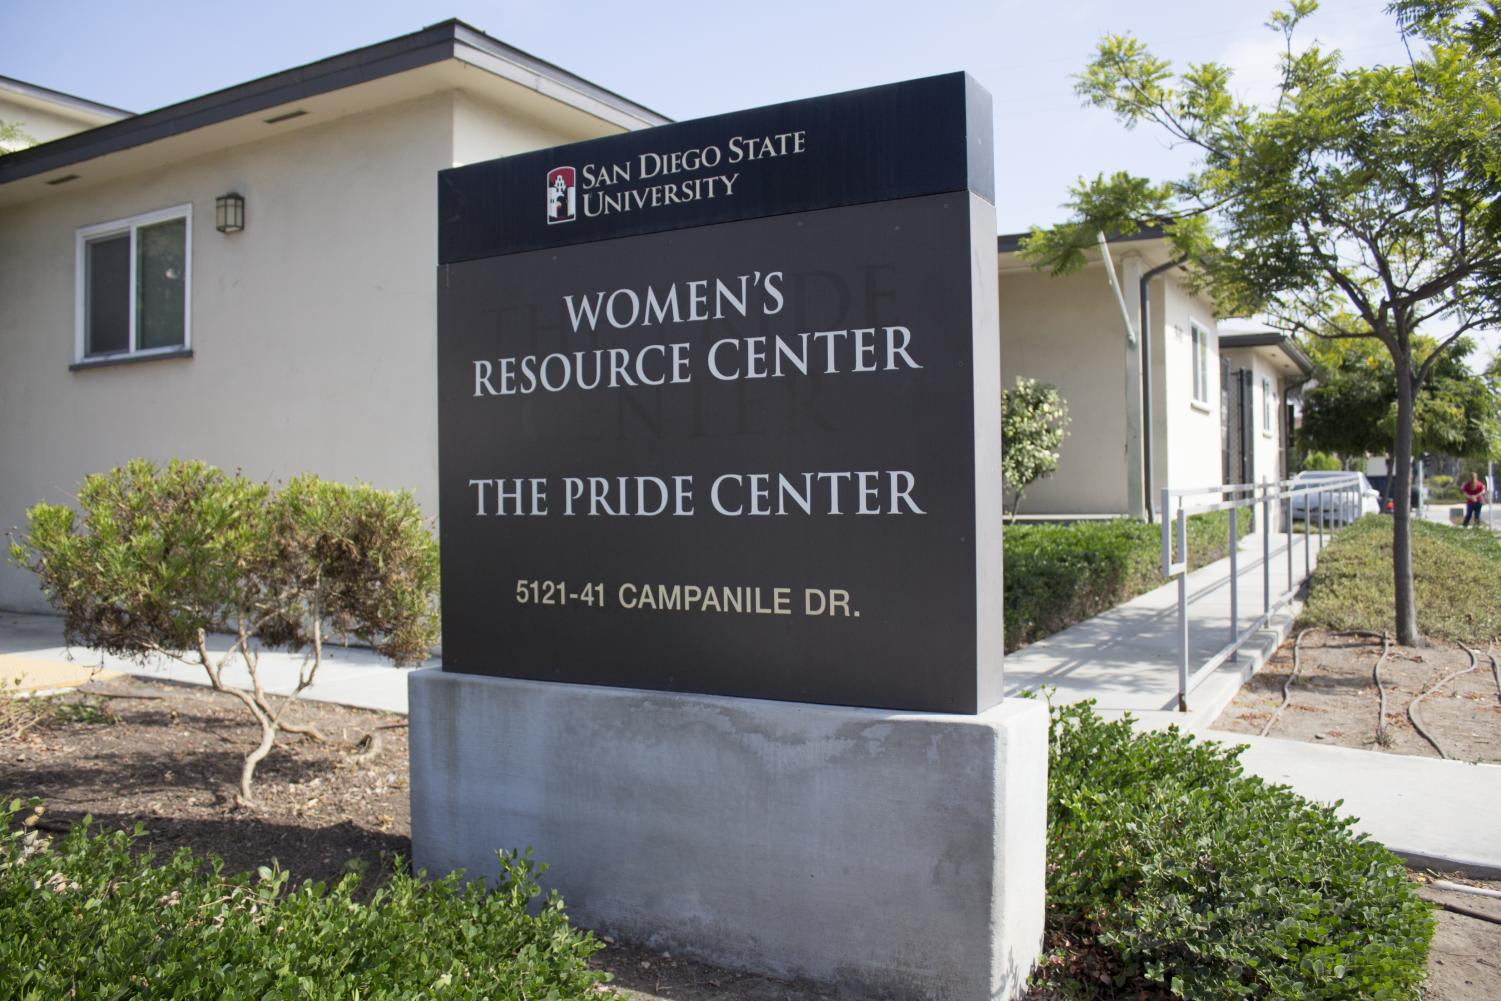 The Women's Resource Center and Pride Center are among the identity centers who will receive additional support through the proposed student fee increases.